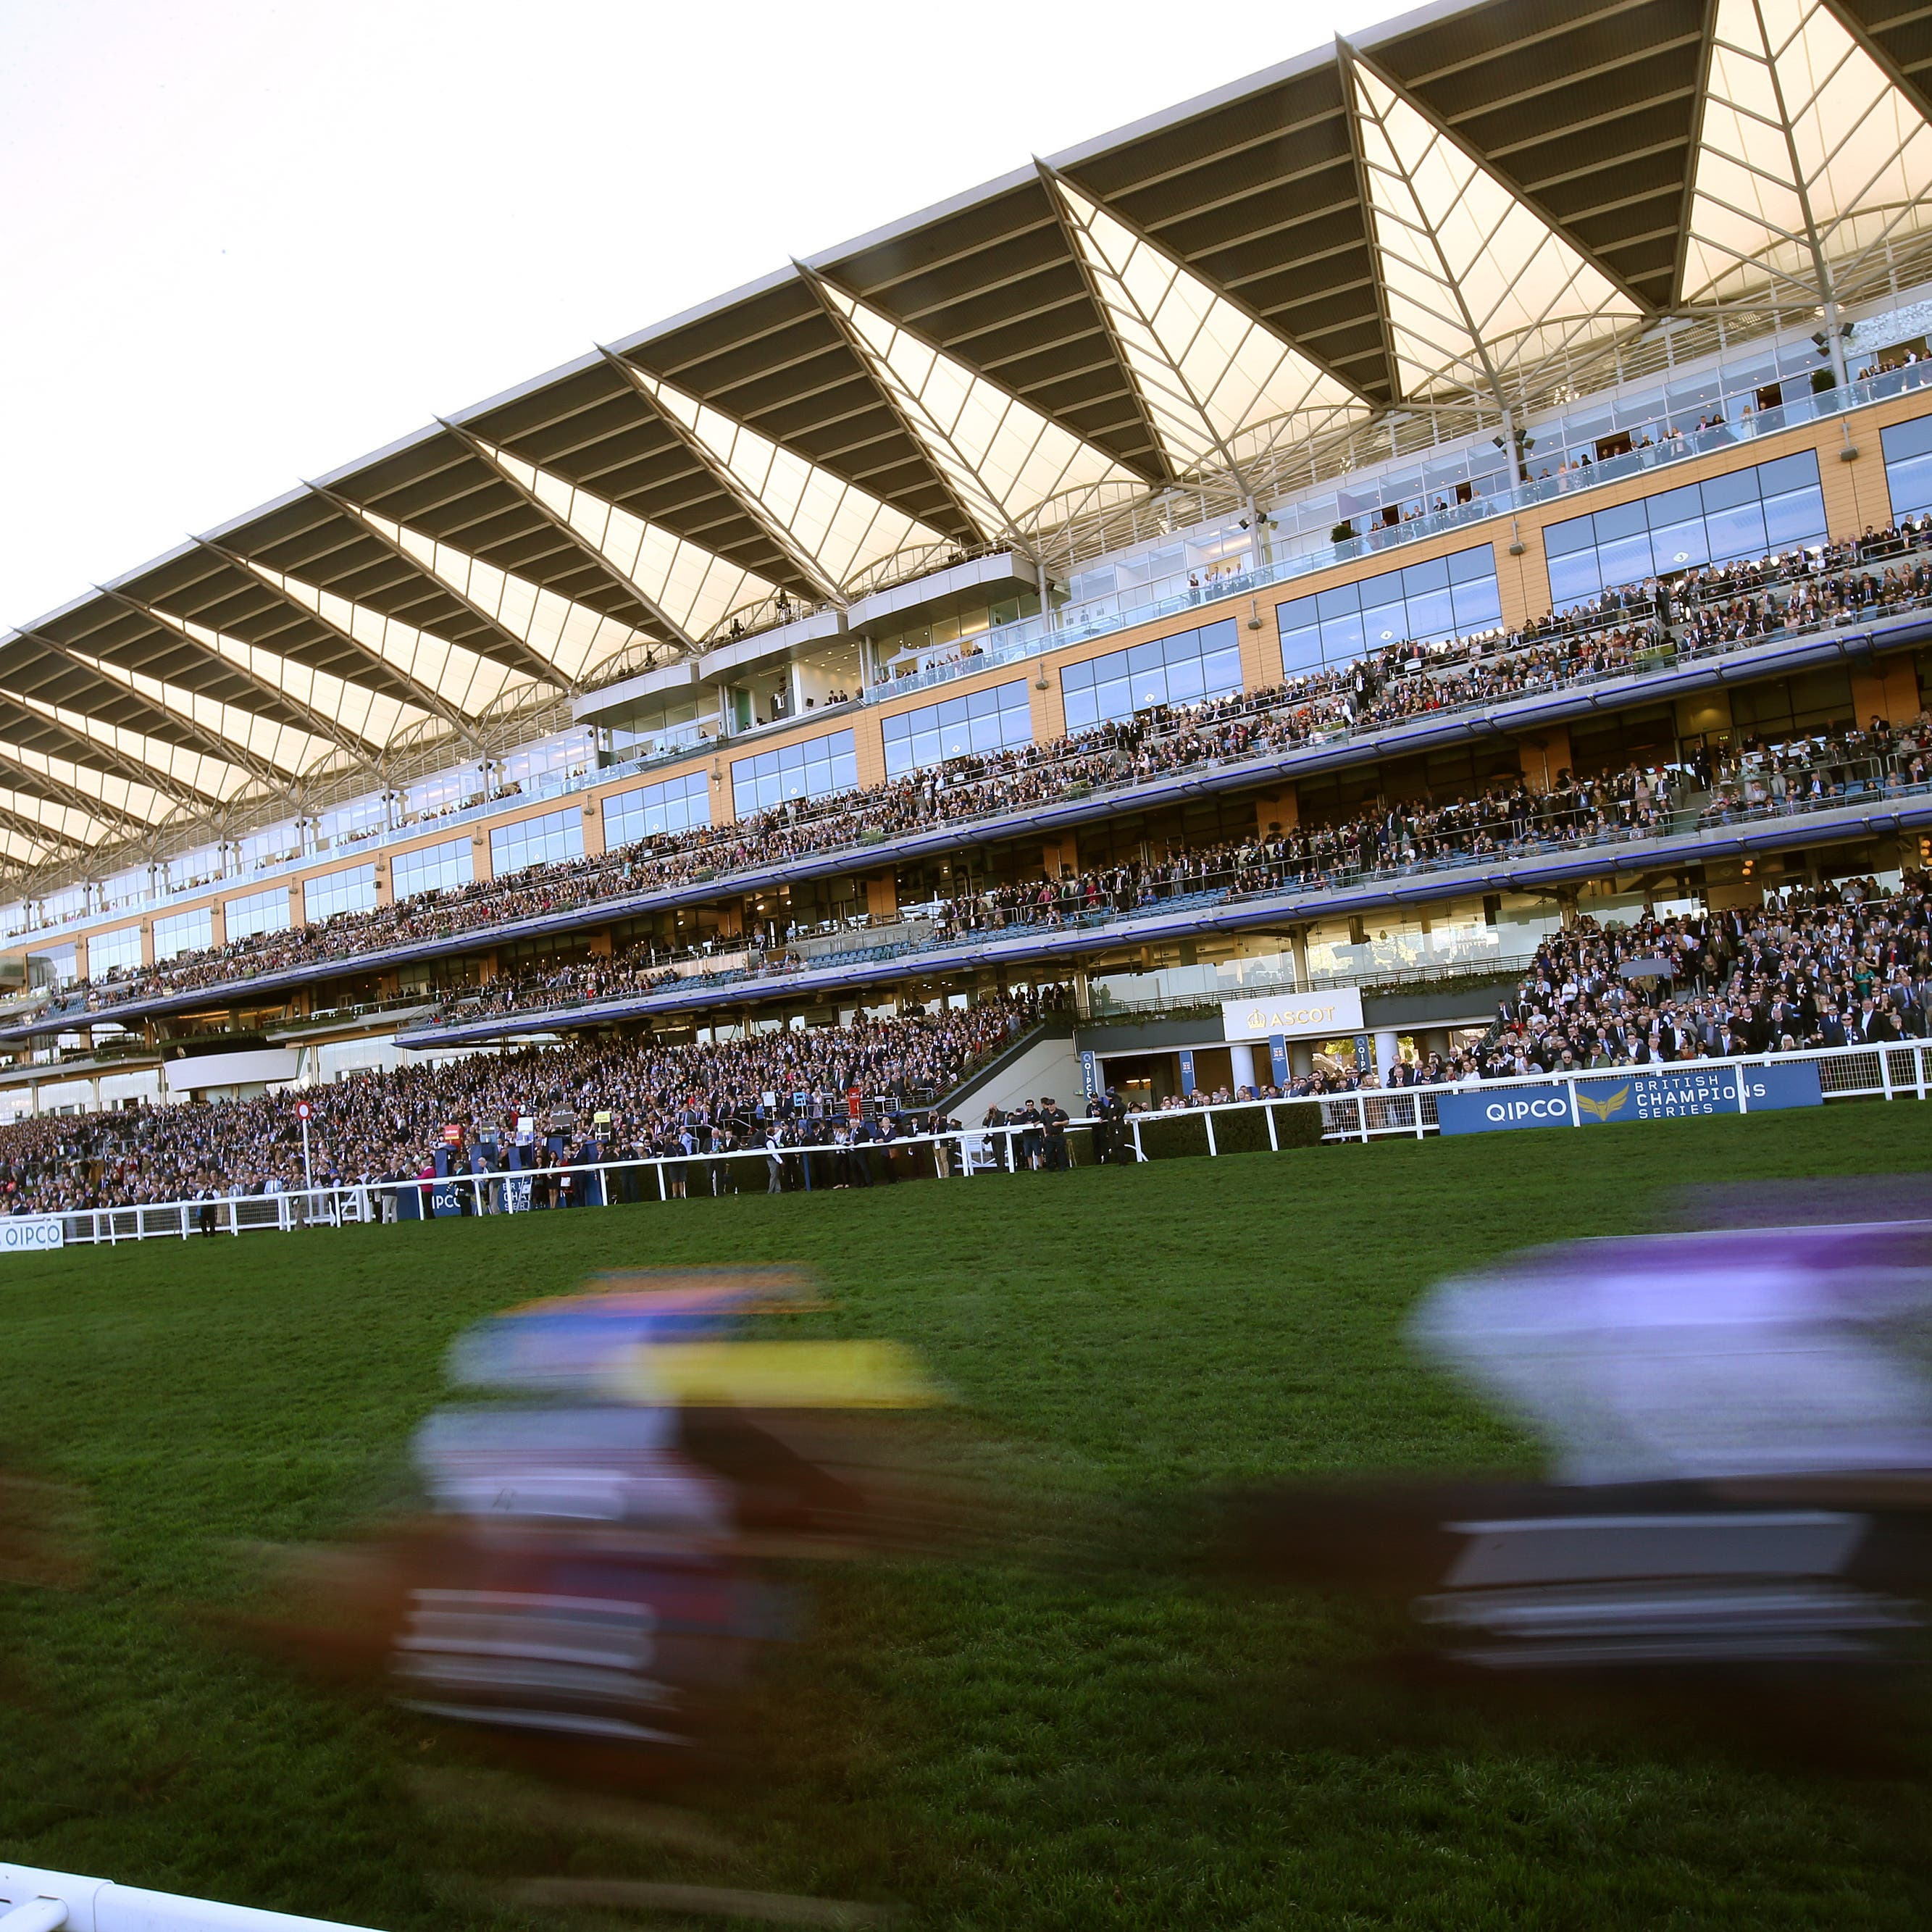 Michael O'Callaghan has mapped out his Royal Ascot team